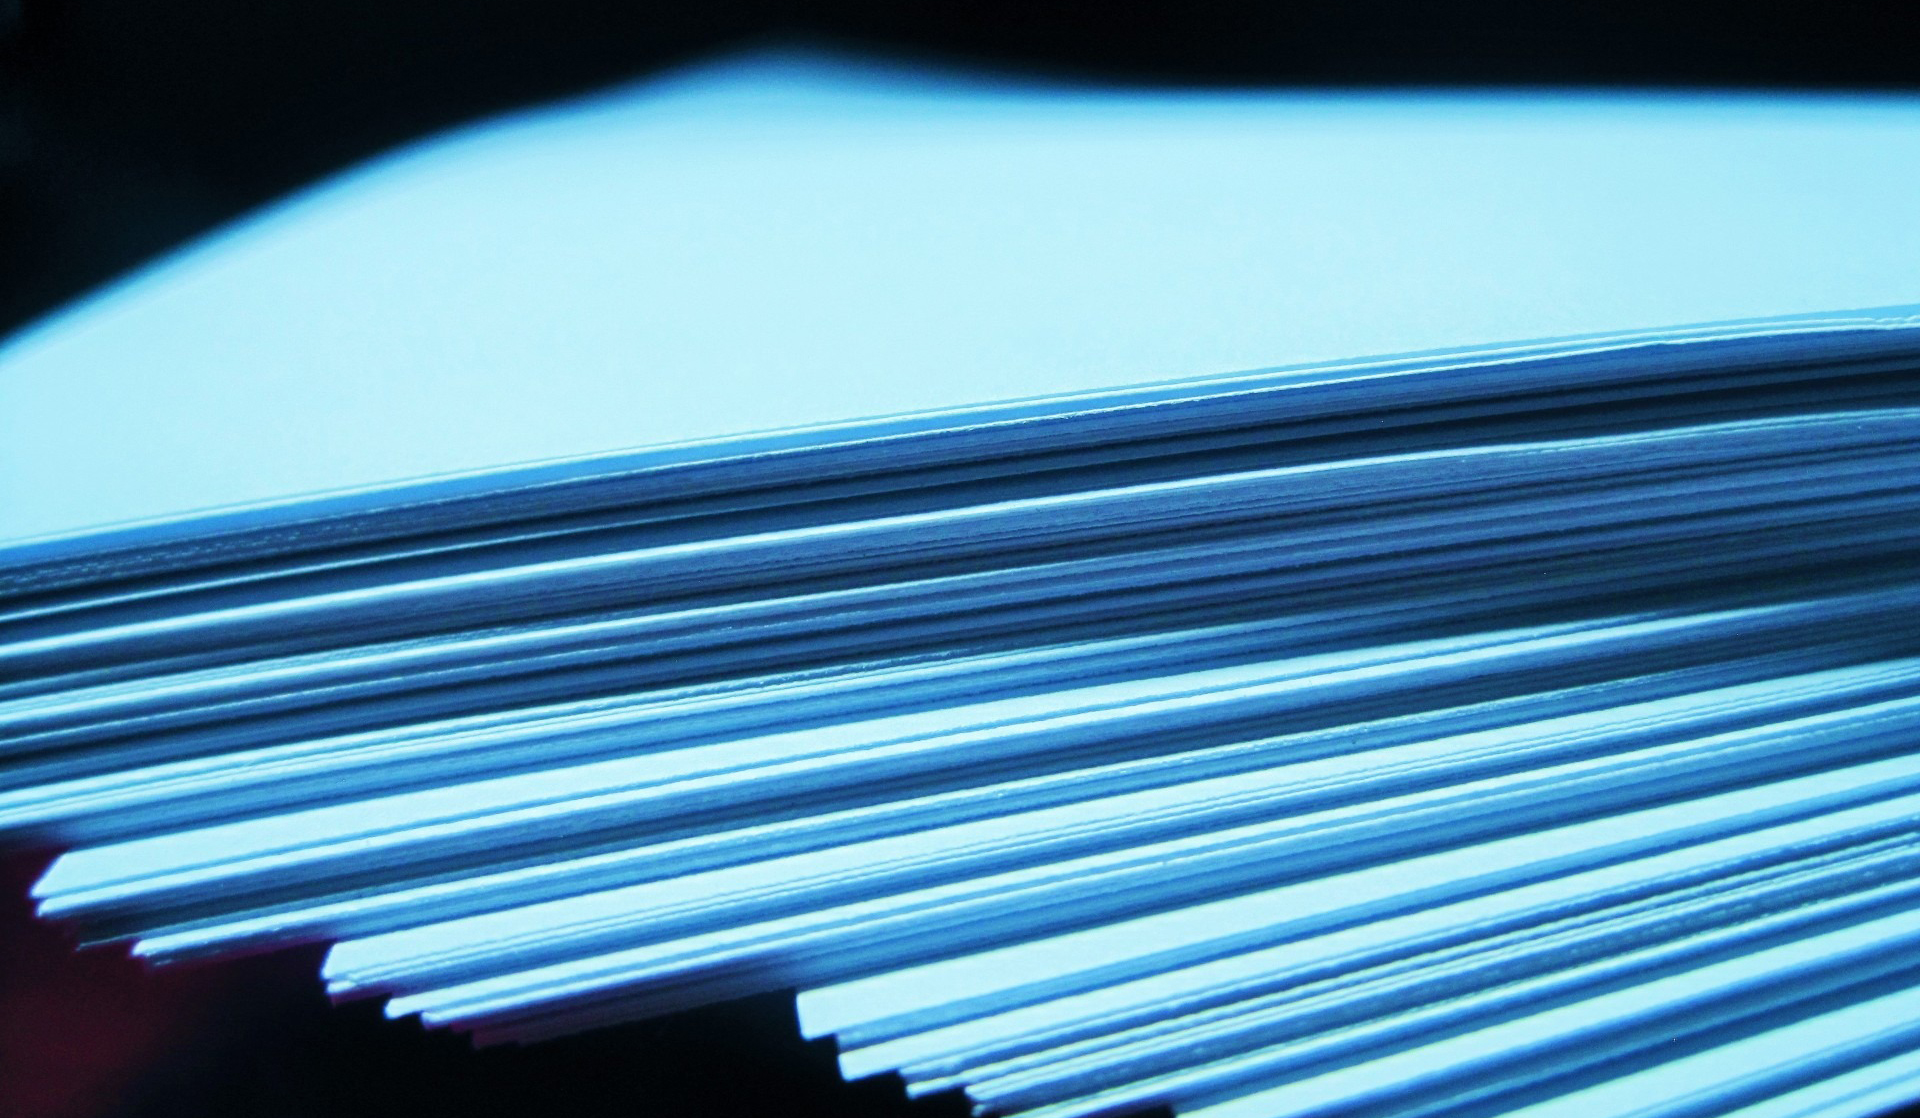 A stack of papers representing the dissertations submitted for the competition.